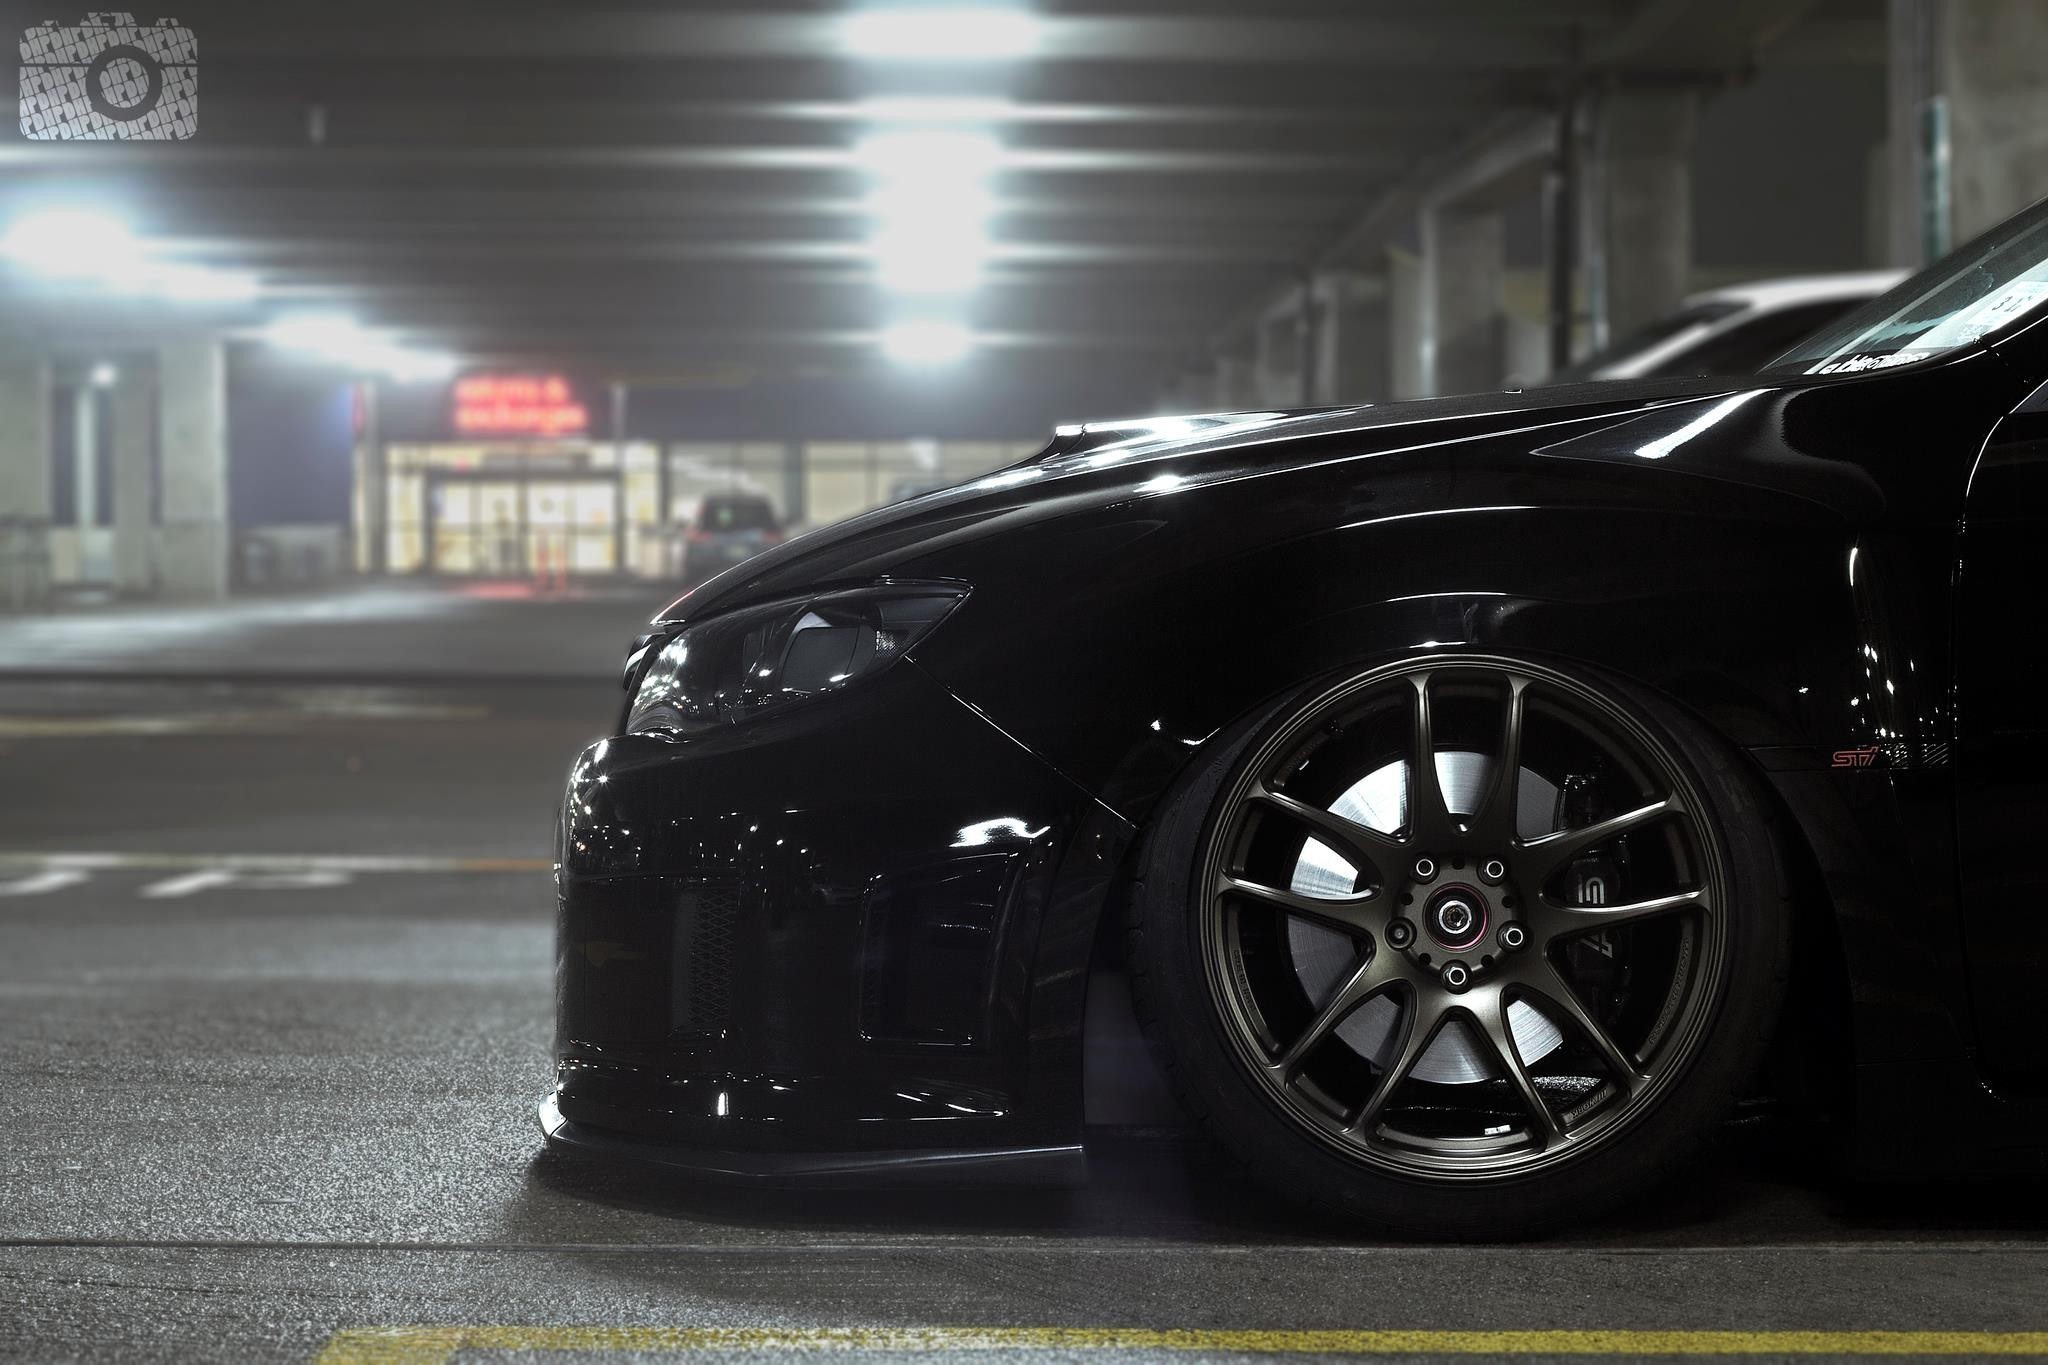 116634 download wallpaper Subaru, Cars, Disks, Drives, Impreza, Wheels screensavers and pictures for free